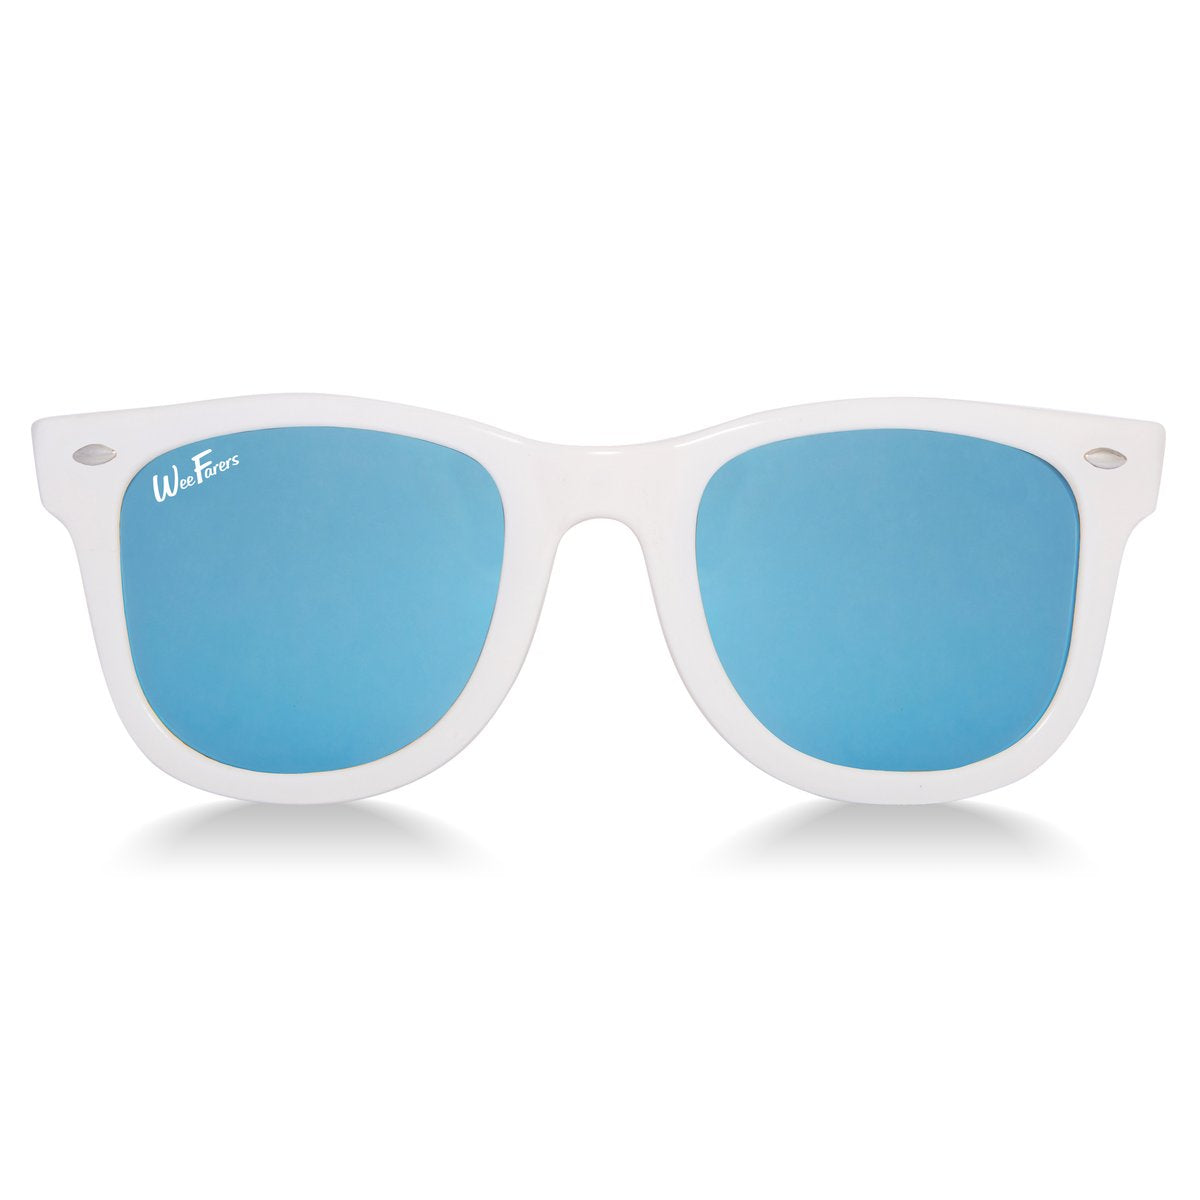 WeeFarer Polarized White Sunglasses with Blue Lens